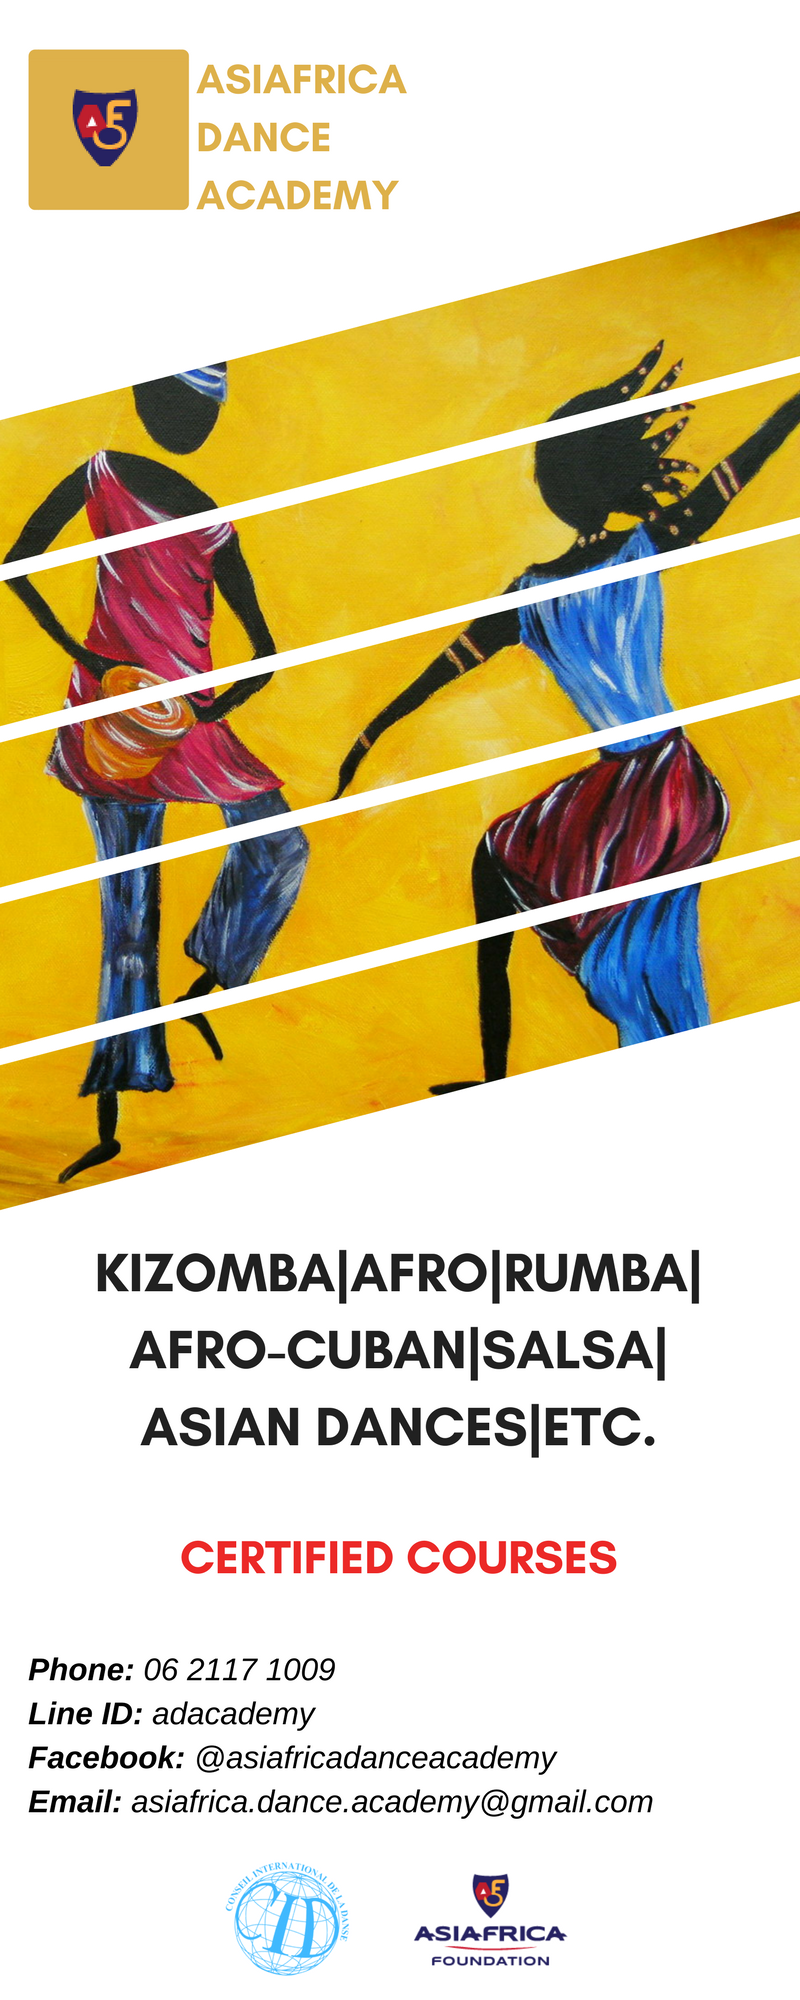 BANNER ASIAFRICA DANCE ACADEMY (5).png